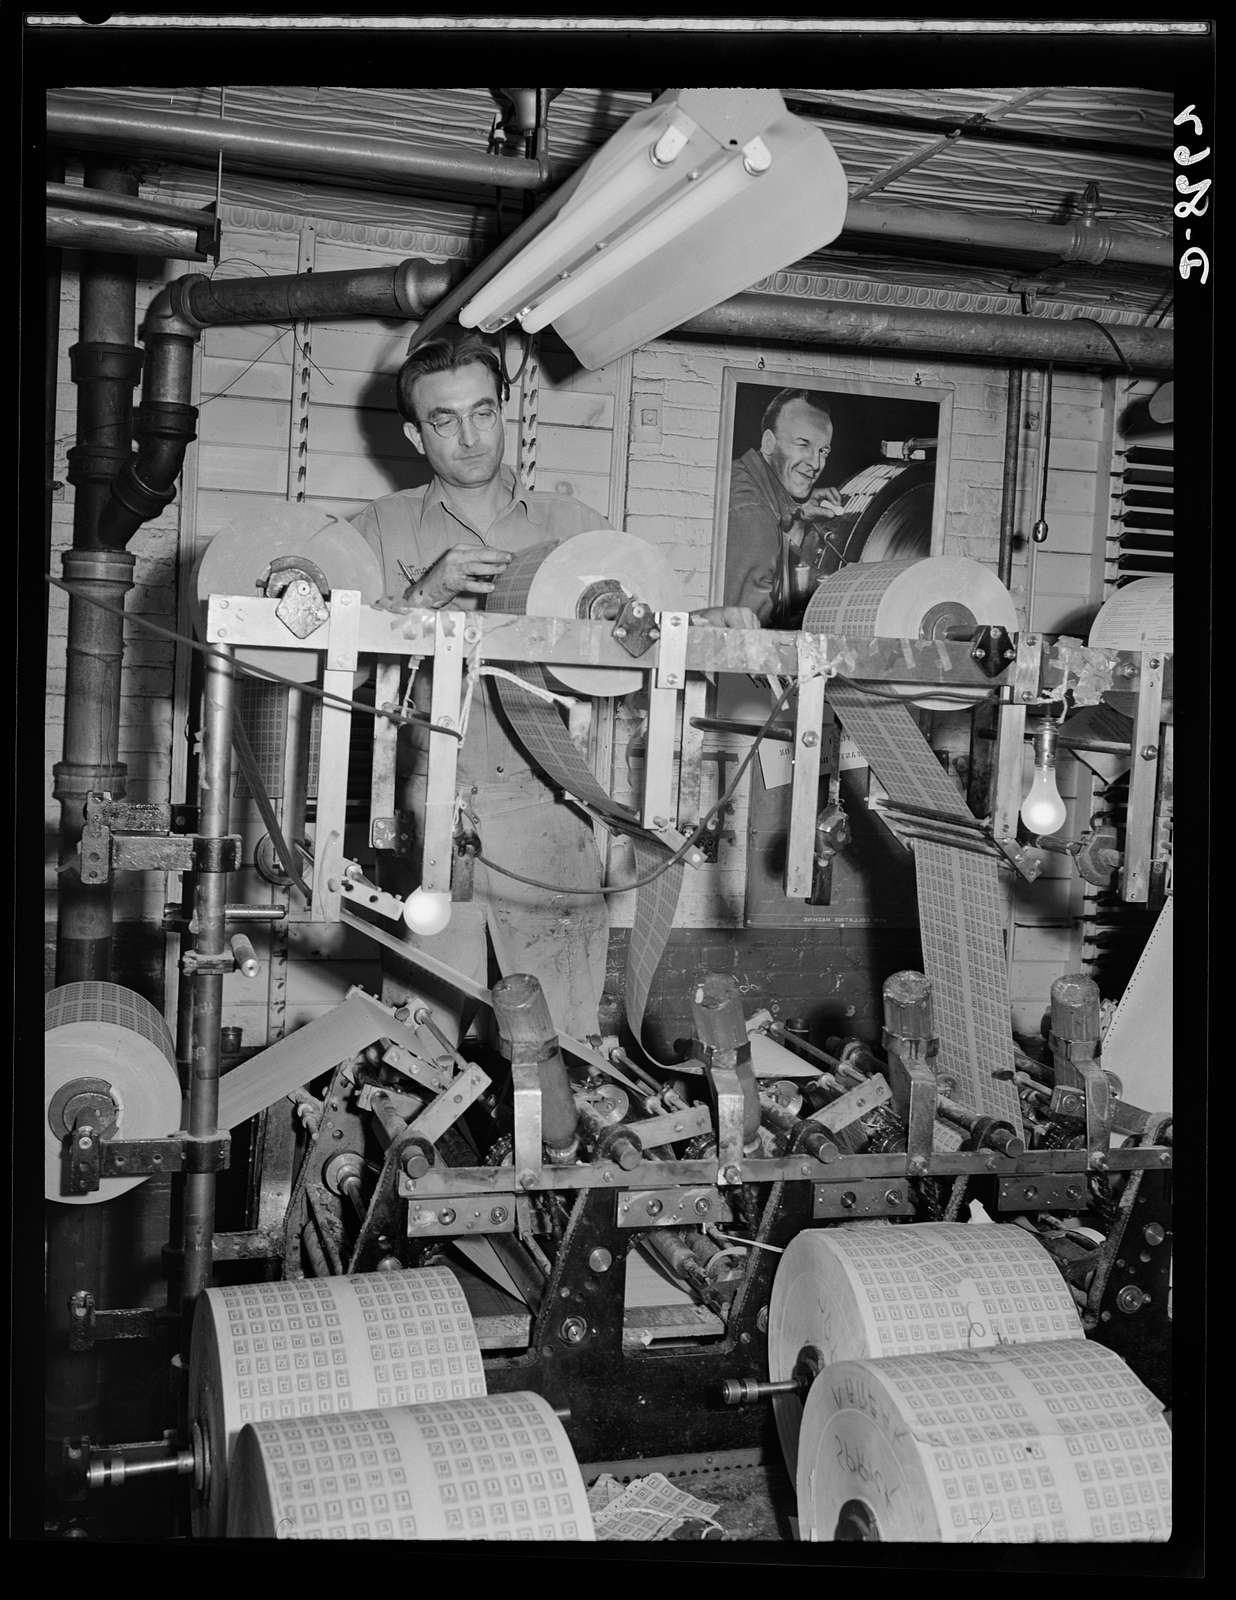 Printing war ration book 2. The coupons and covers flow through the collator where the pages and covers are assembled and glued. The coupons and covers leave the collator assembled in glued sheets aggregating four war ration books. Otto Krants inspects a roll of coupons on collator